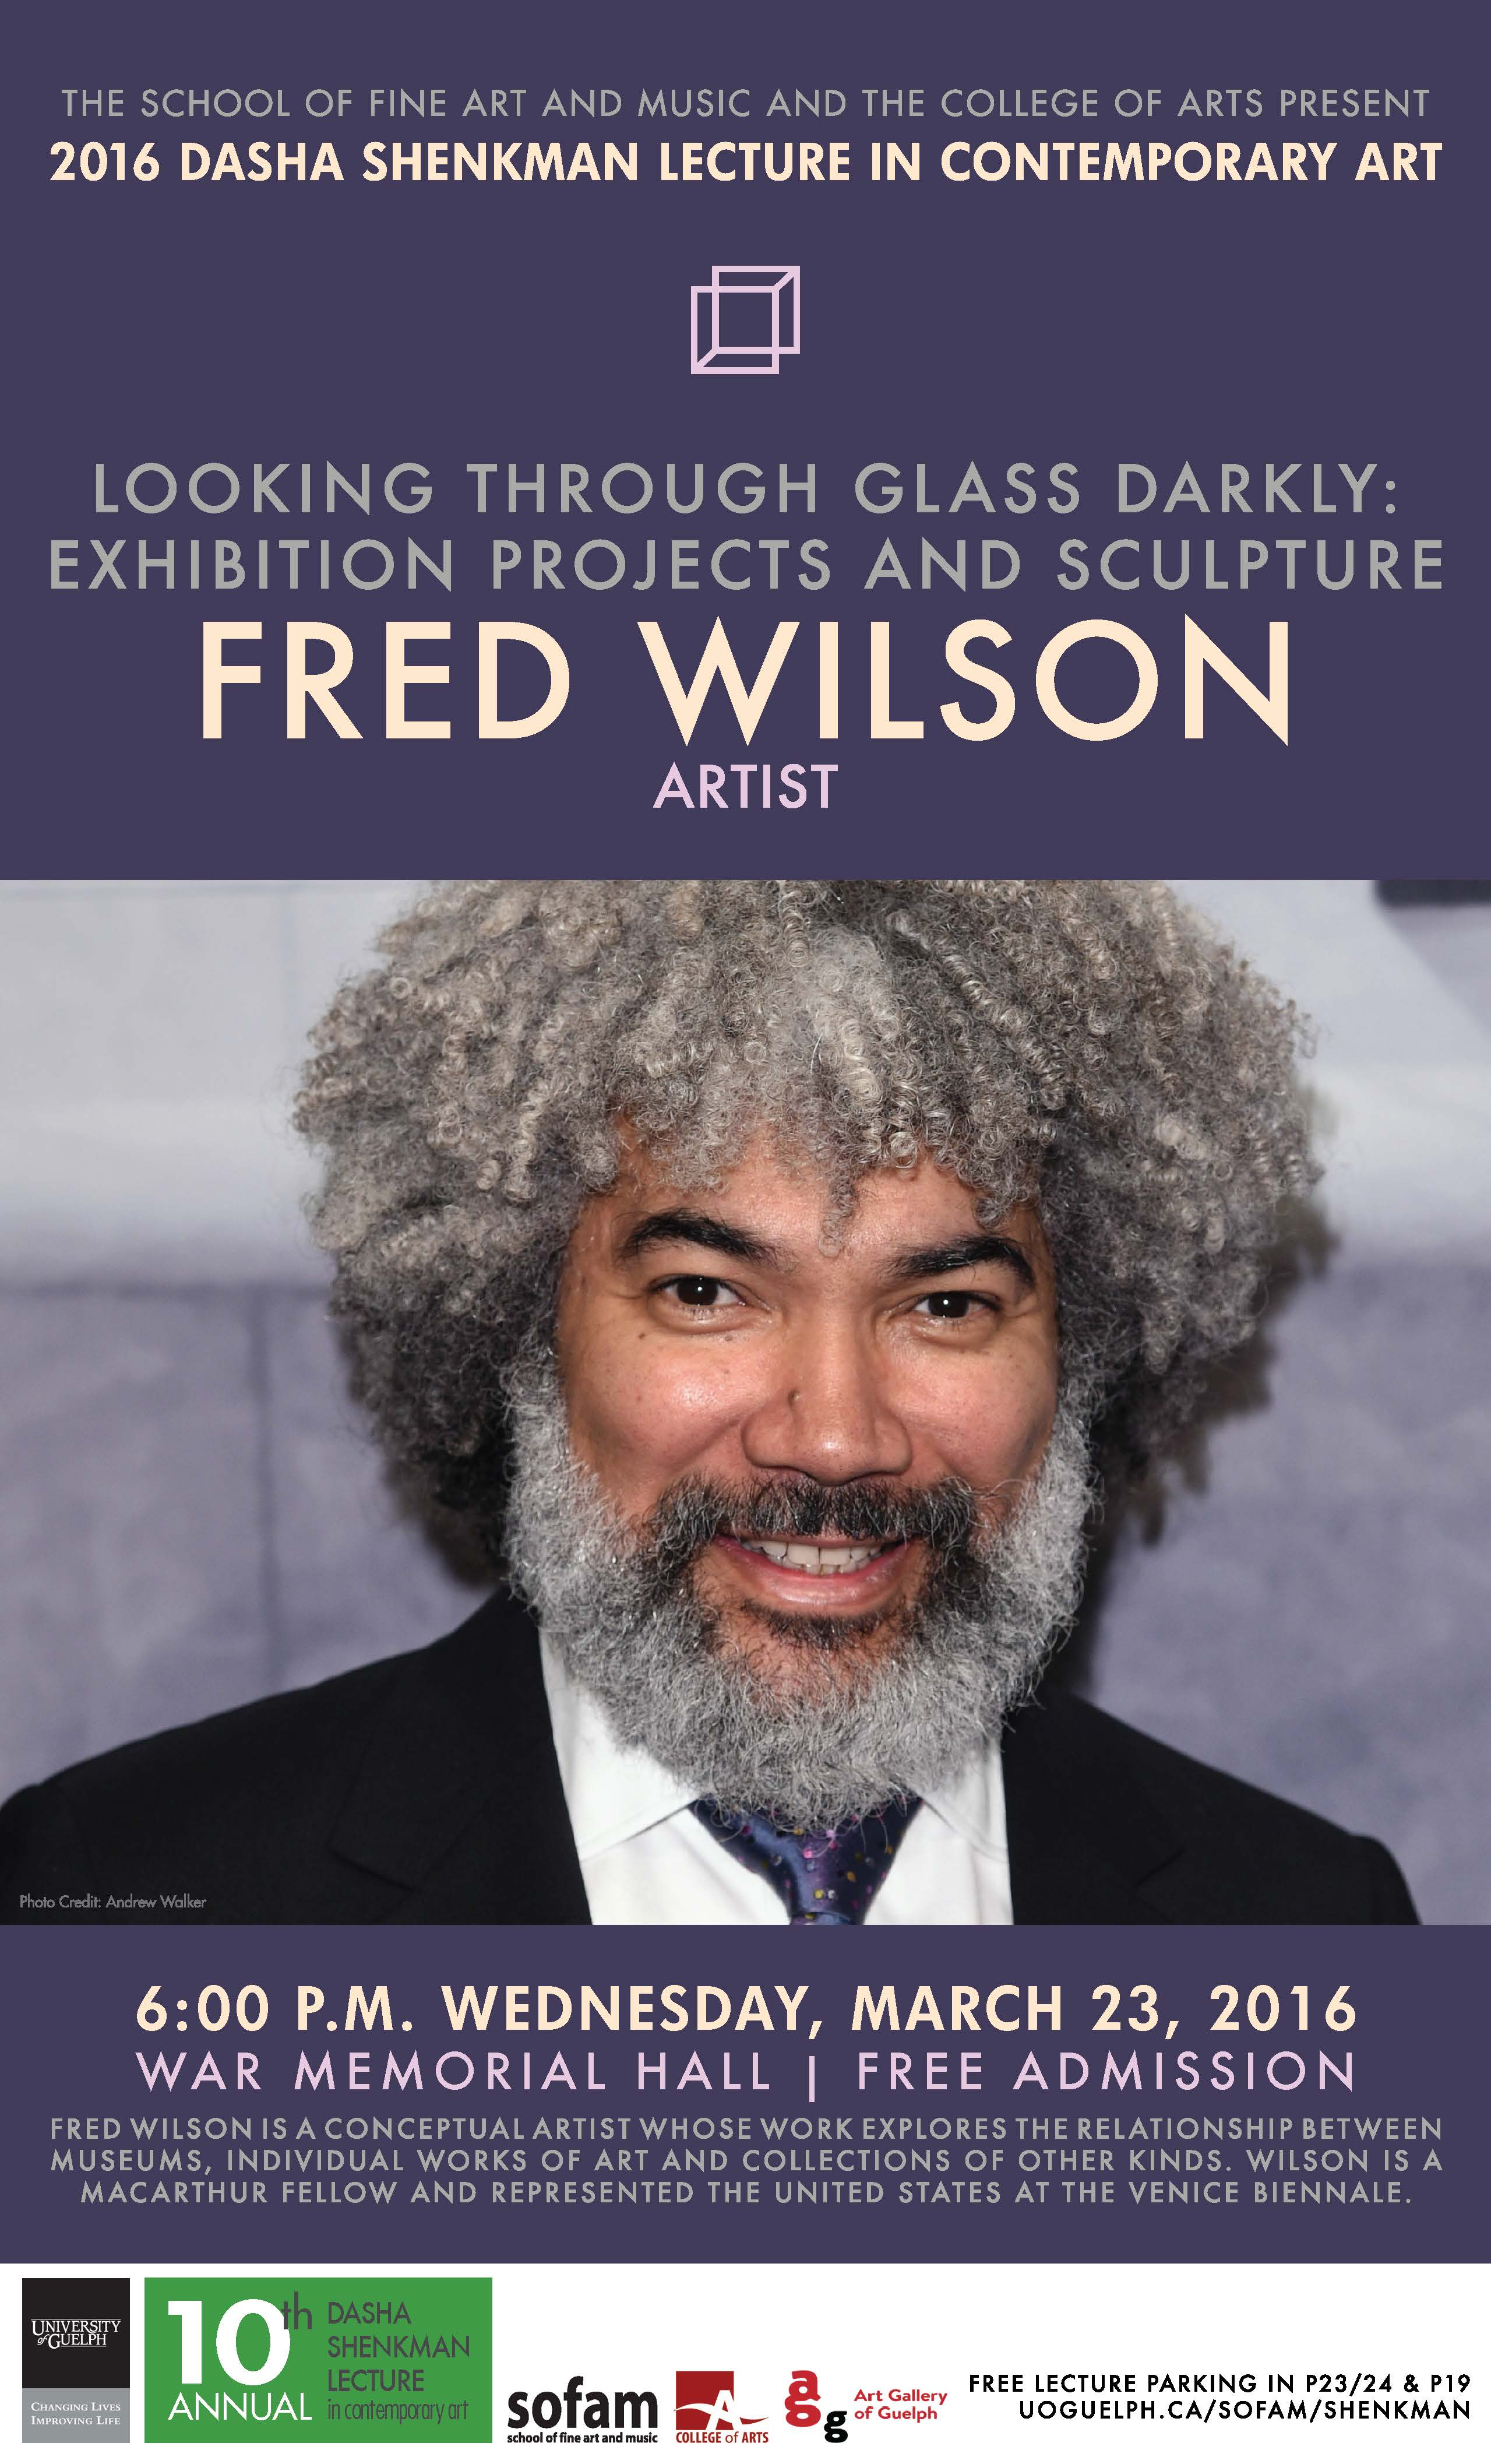 poster for fred wilson